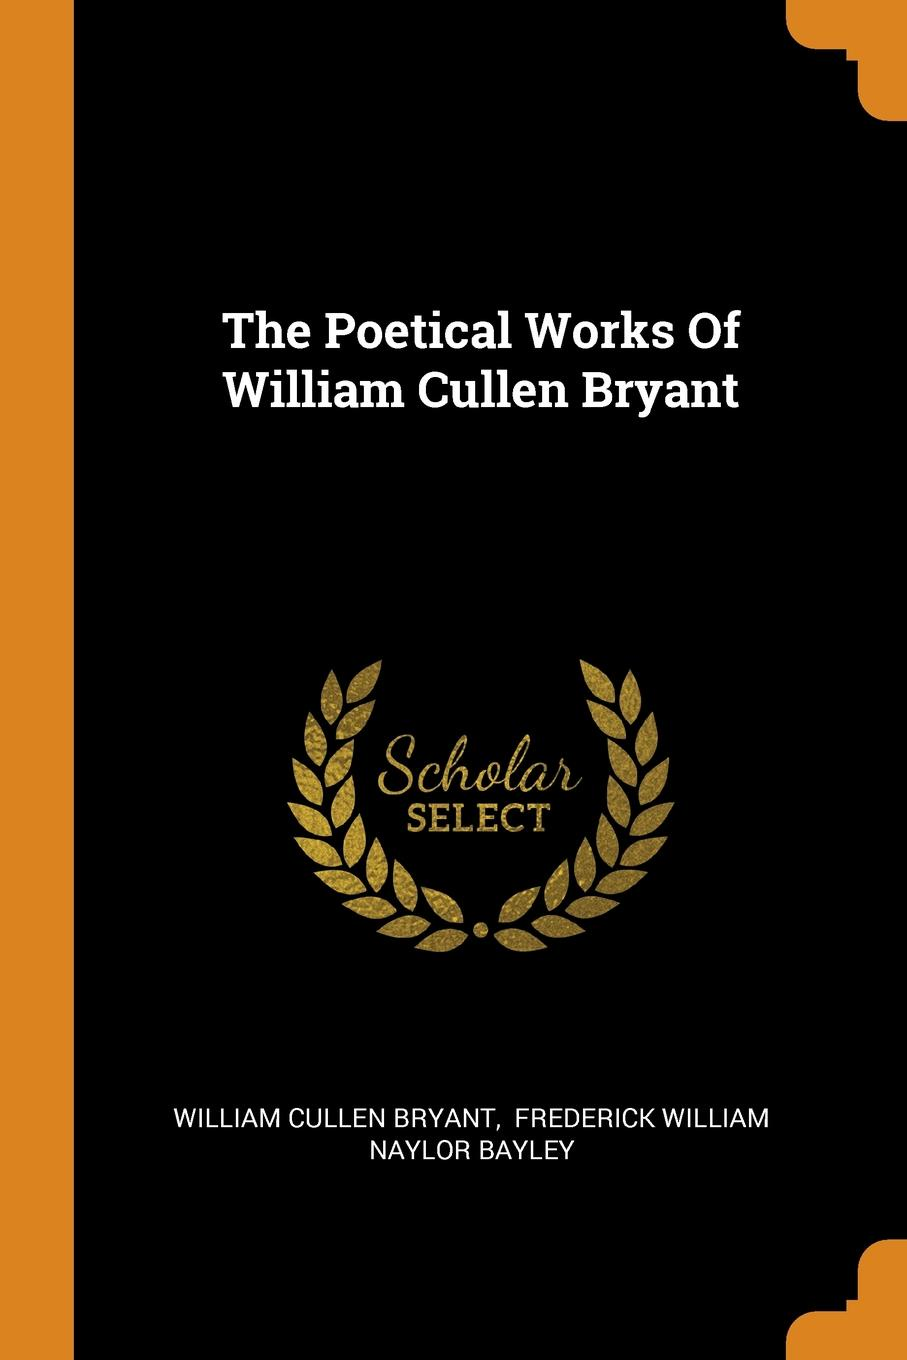 William Cullen Bryant The Poetical Works Of William Cullen Bryant delano ducasse lawrence o bryant and lynda t goodfellow survey of the knowledge